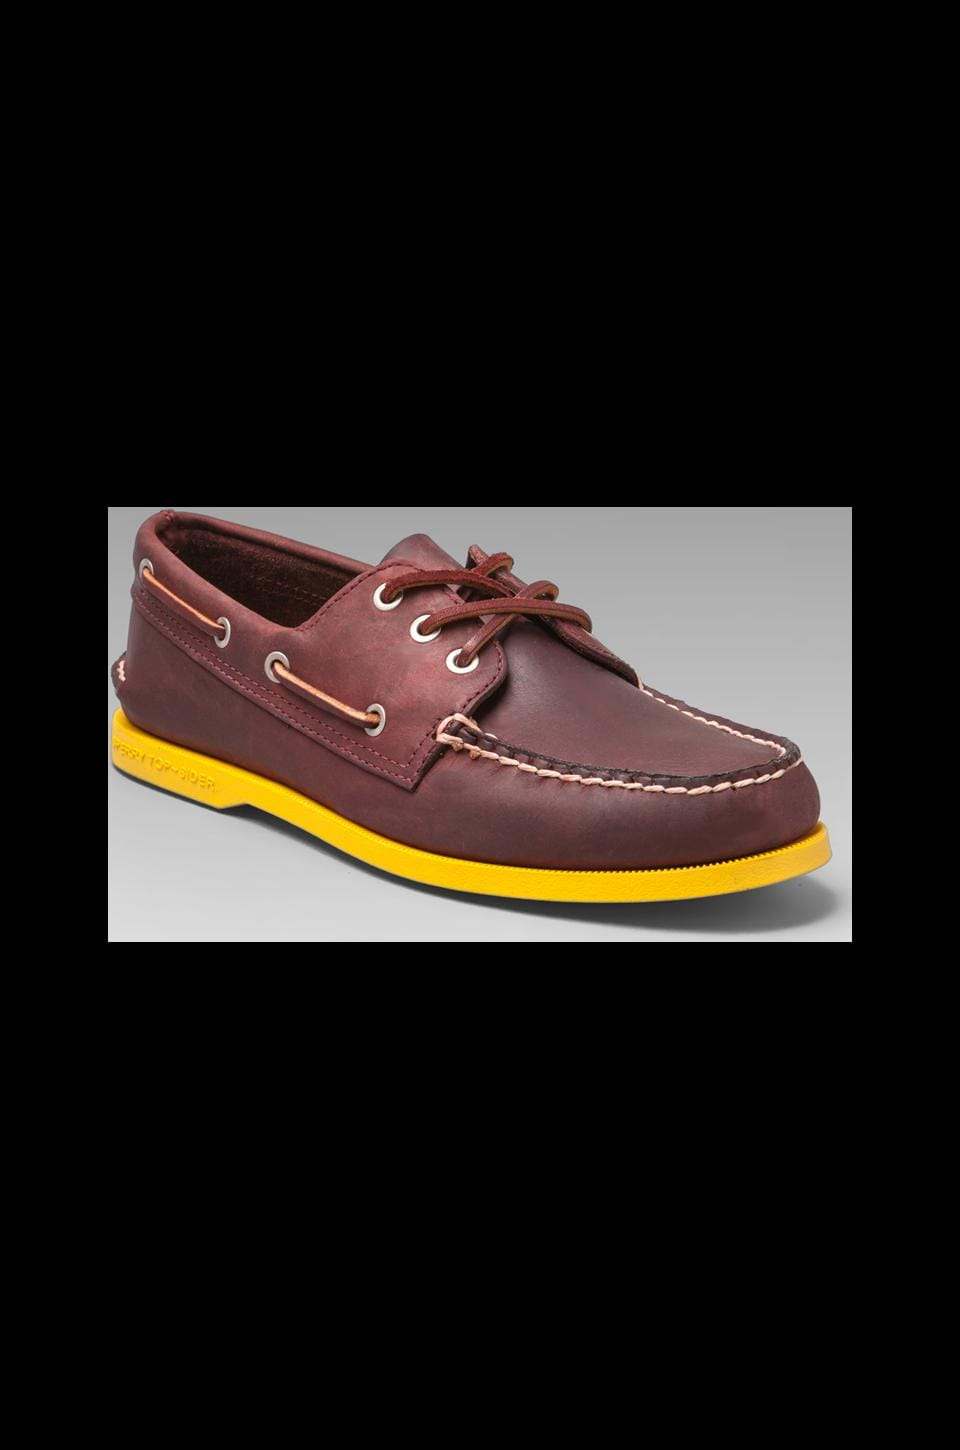 Sperry Top-Sider Silvercloud Collection A/O in Oxblood/Brilliant Yellow